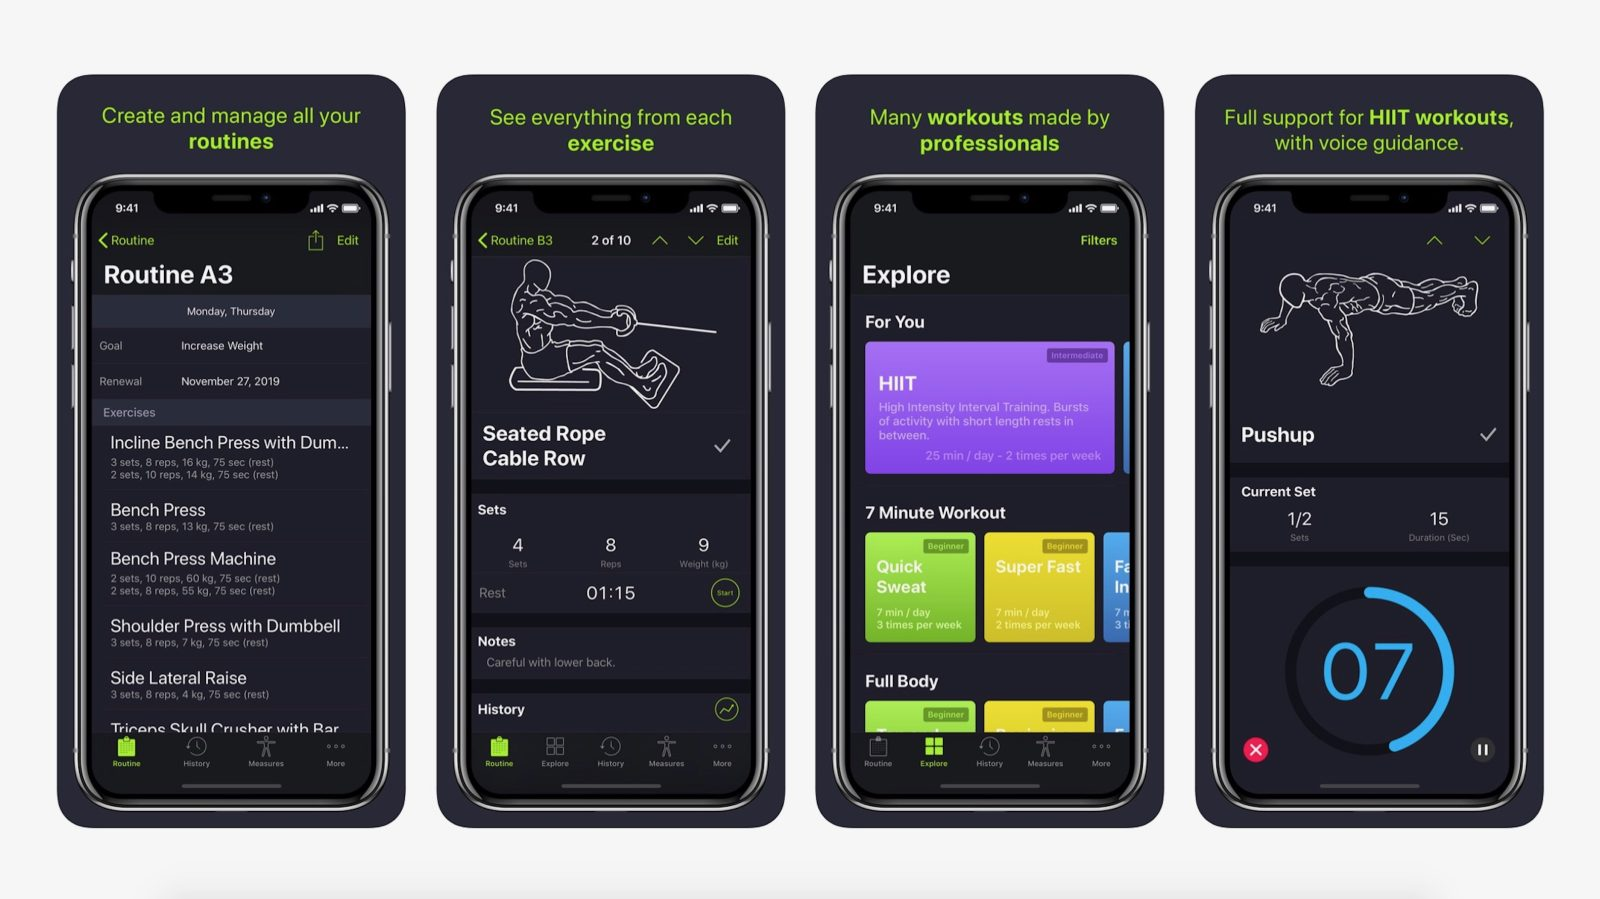 SmartGym app for iOS updated with new Apple Watch app, voice guidance, full HIIT support, more